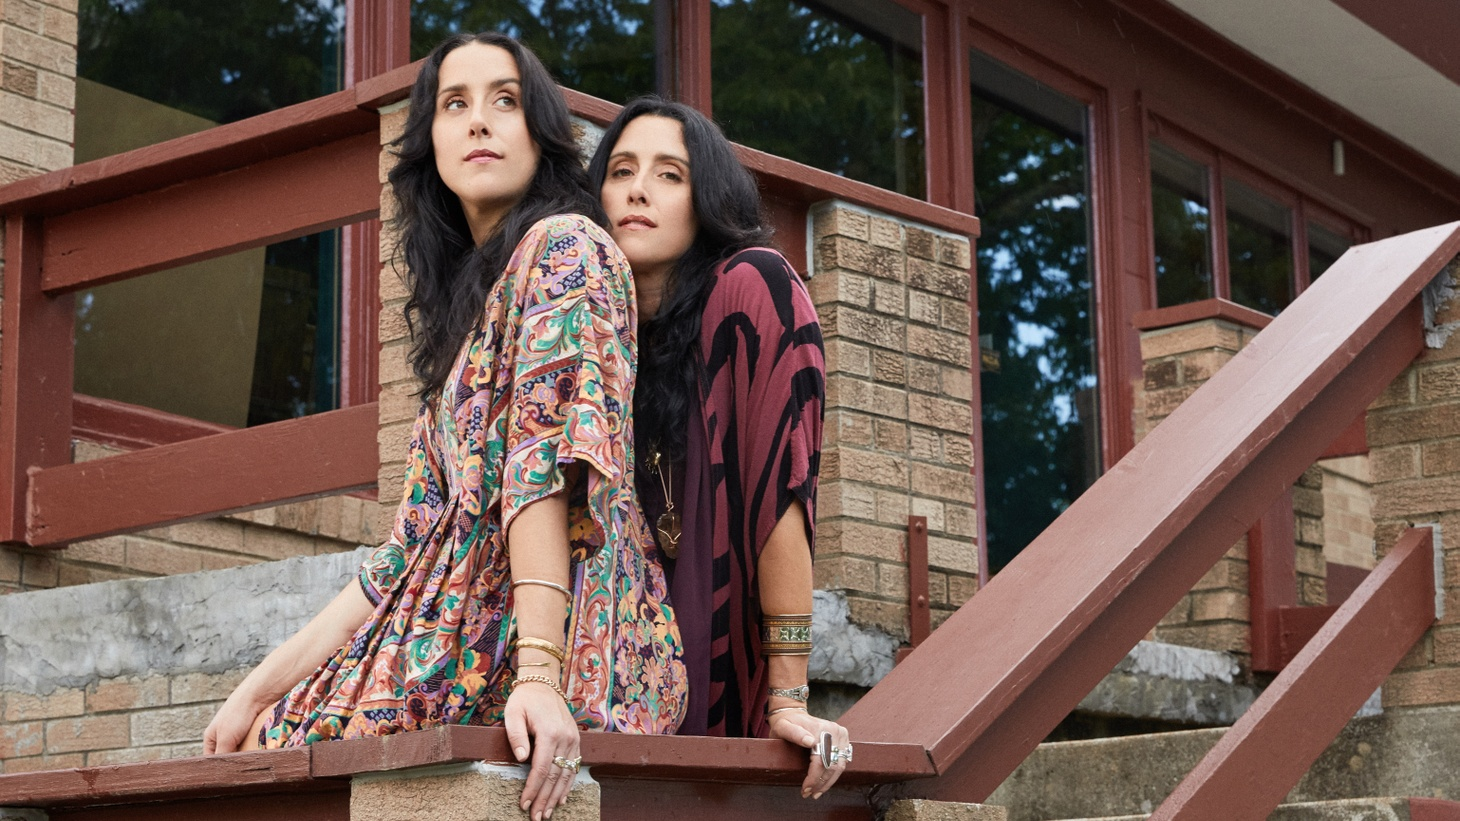 """It's a fact that sibling harmonies are as tight as you can get. Case in point: The Watson Twins - identical sisters who co-wrote and sang all the parts together for the first time on their forthcoming album, """"Duo."""""""